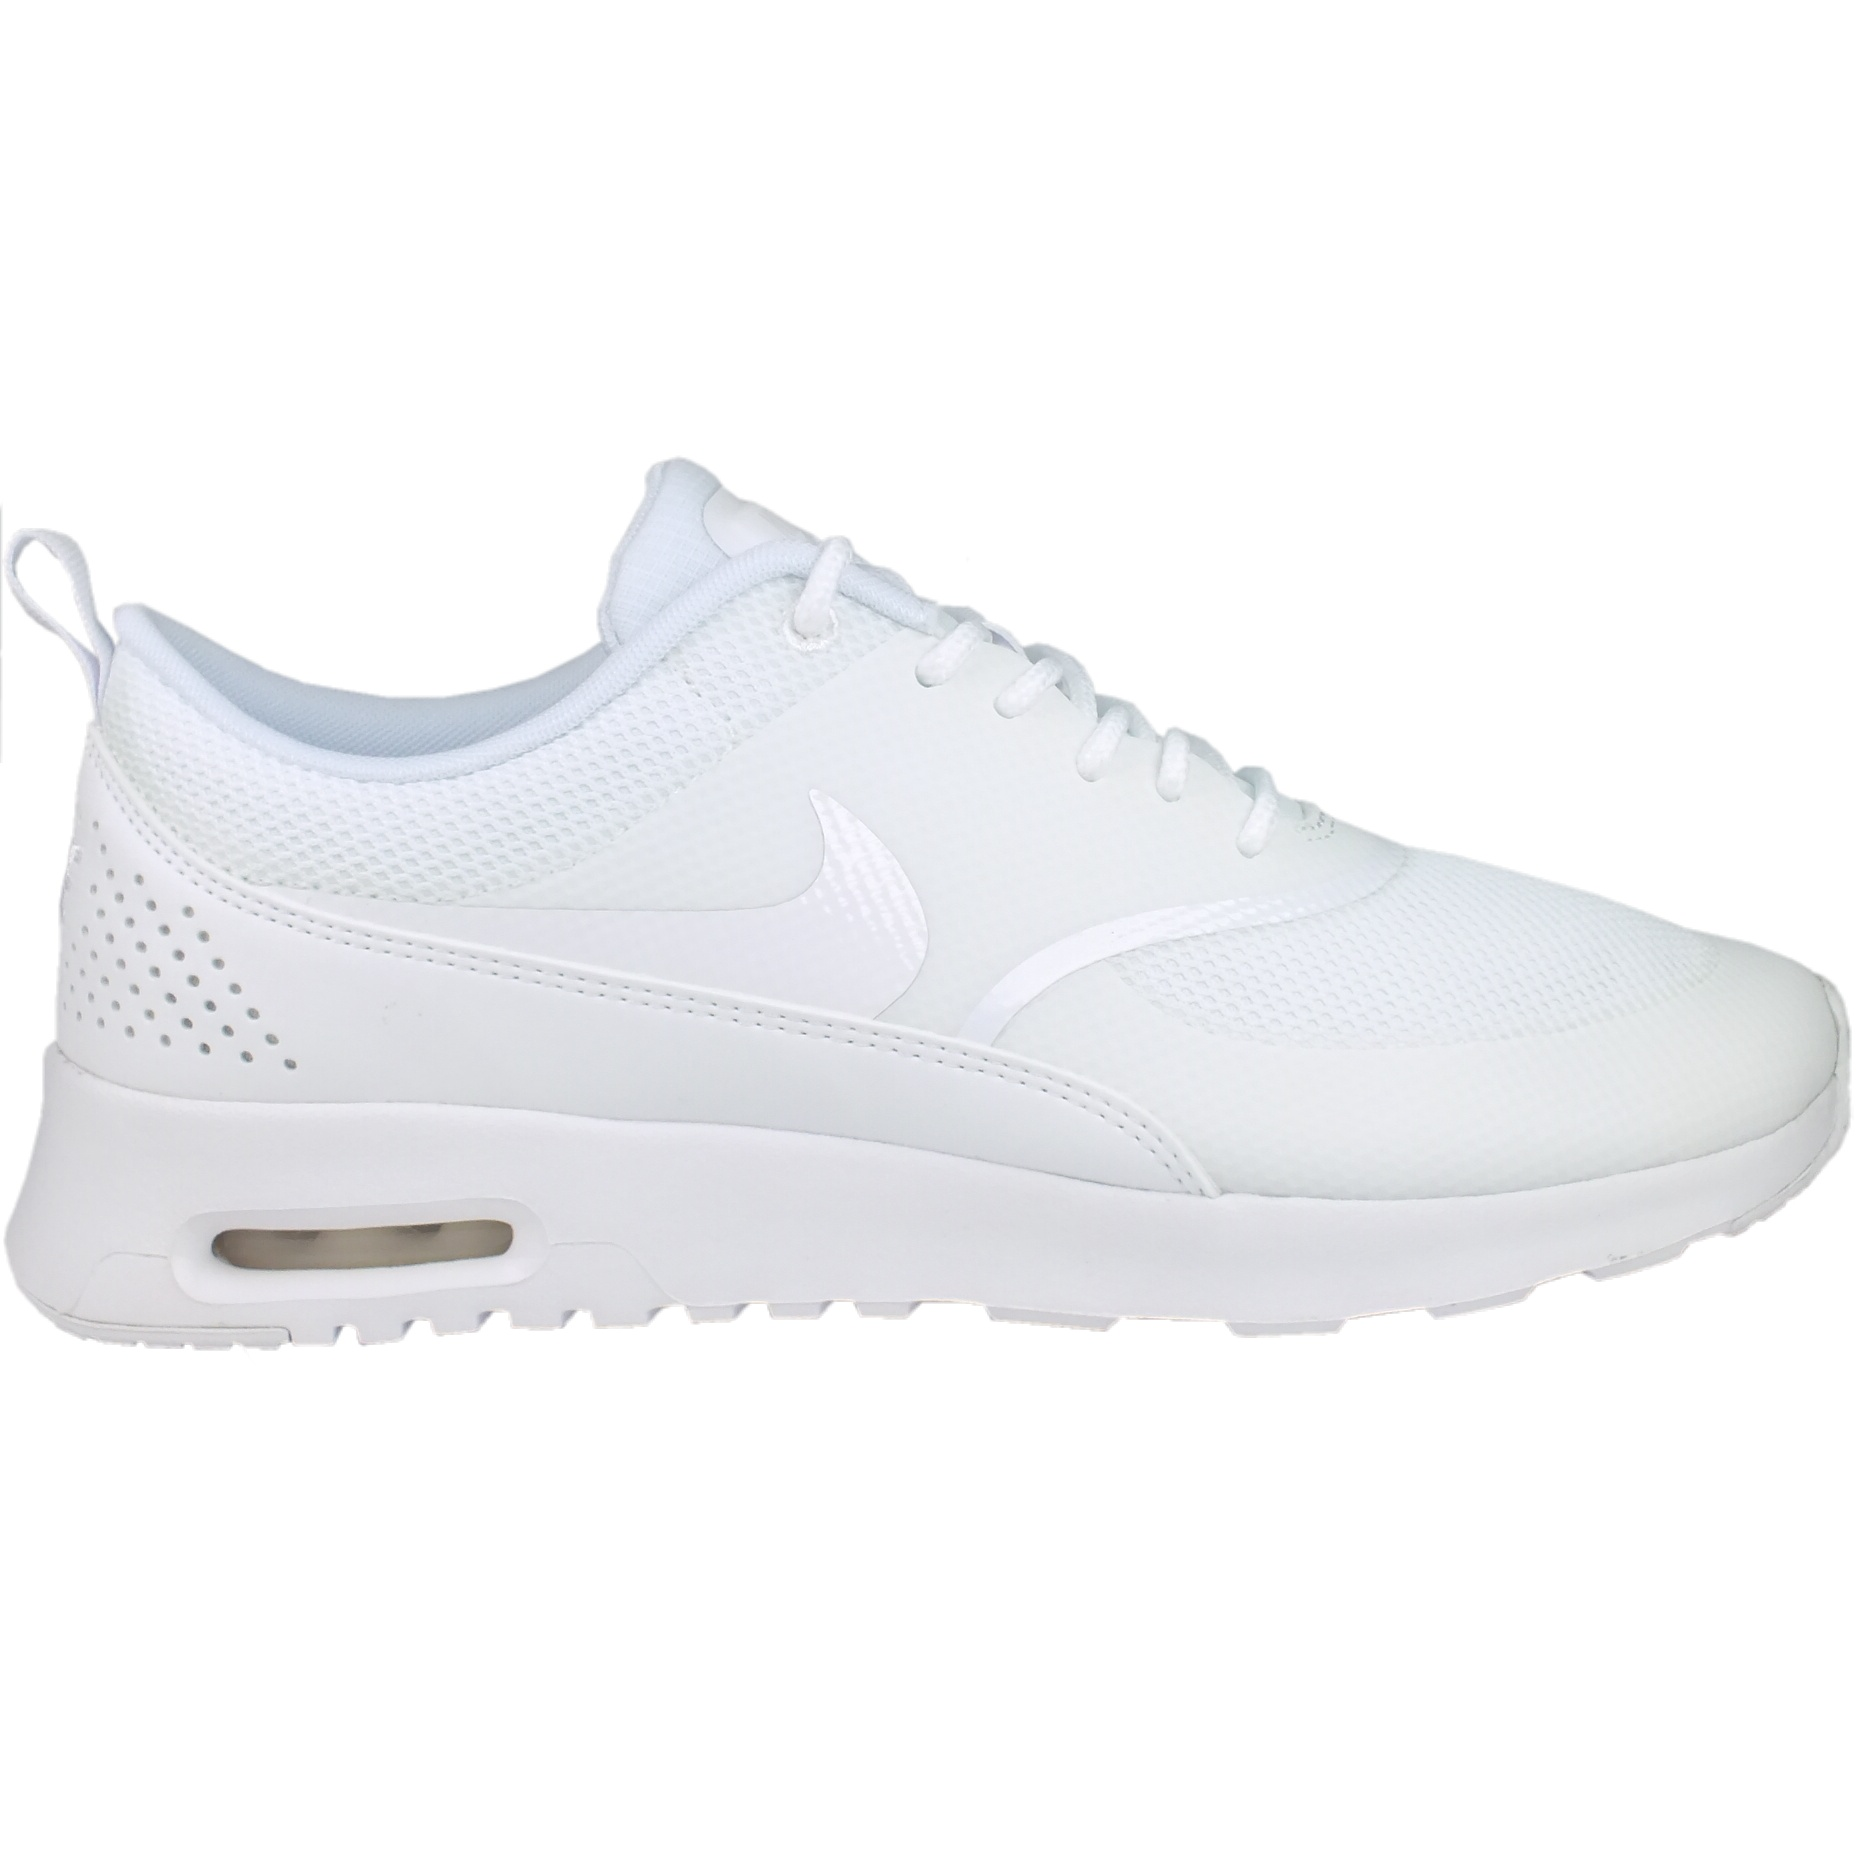 nike air max thea schuhe turnschuhe sneaker damen ebay. Black Bedroom Furniture Sets. Home Design Ideas